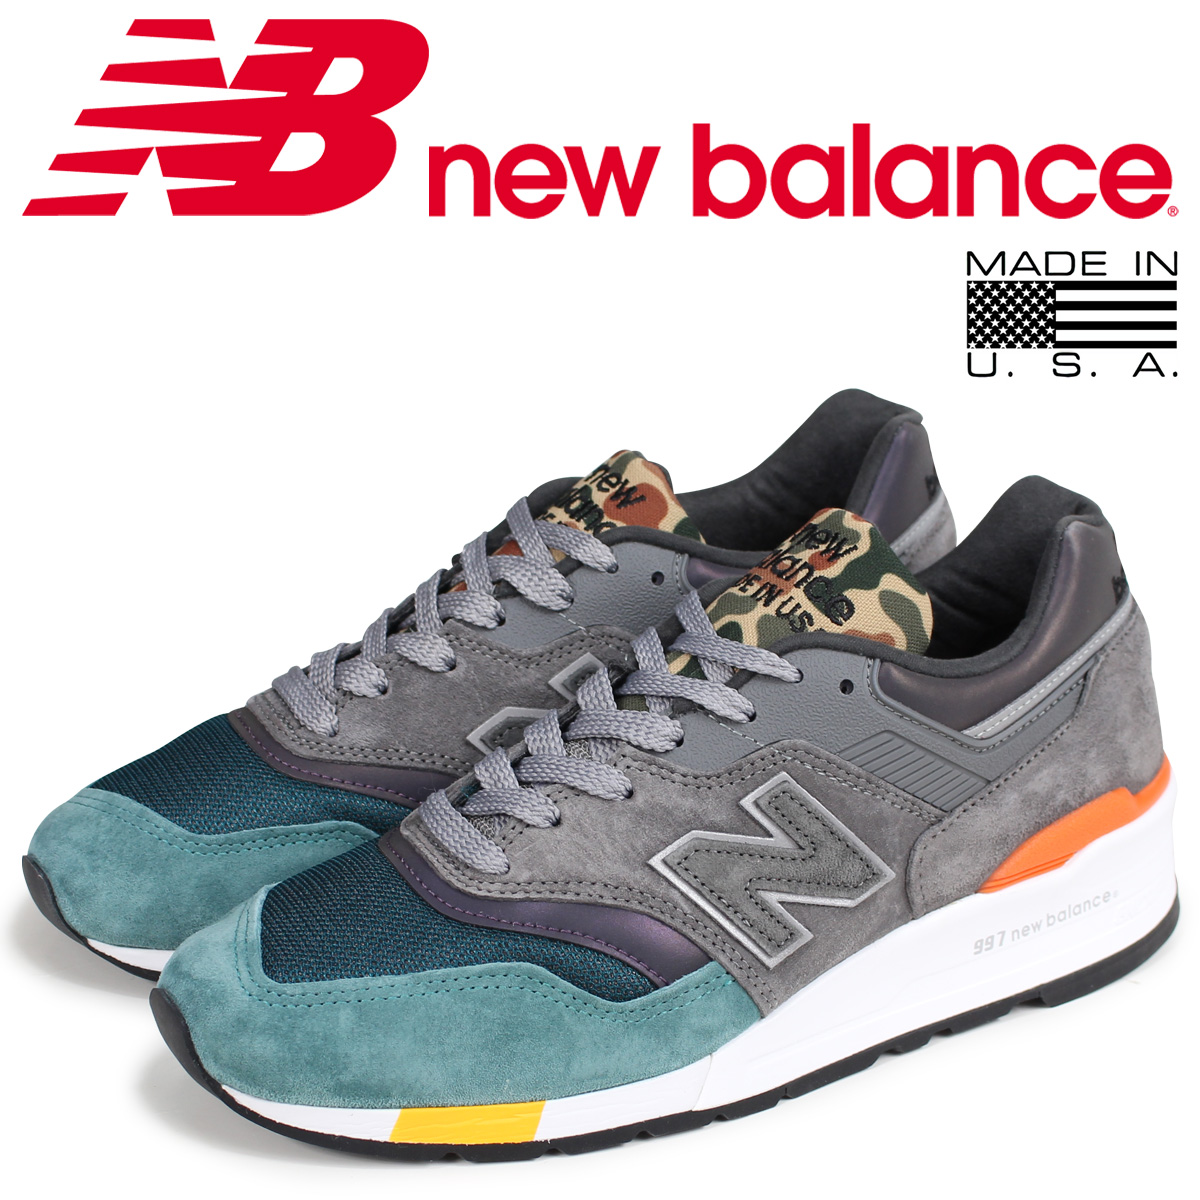 premium selection 9b7f9 4643f new balance 997 men's New Balance sneakers M997NM D Wise MADE IN USA gray